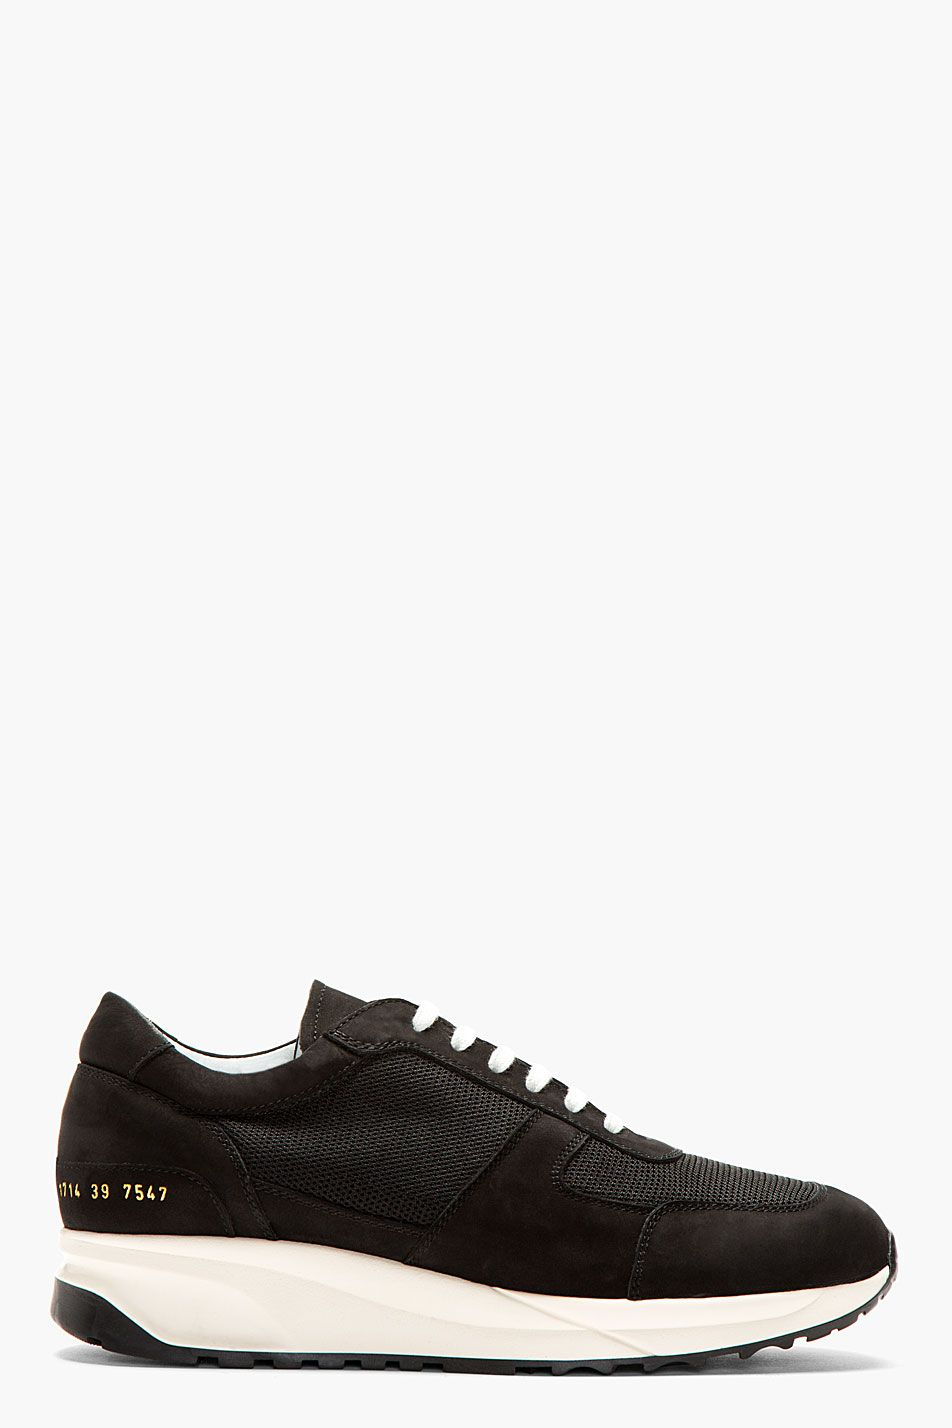 Common Projects Black Track Running Shoes for men | SSENSE ...